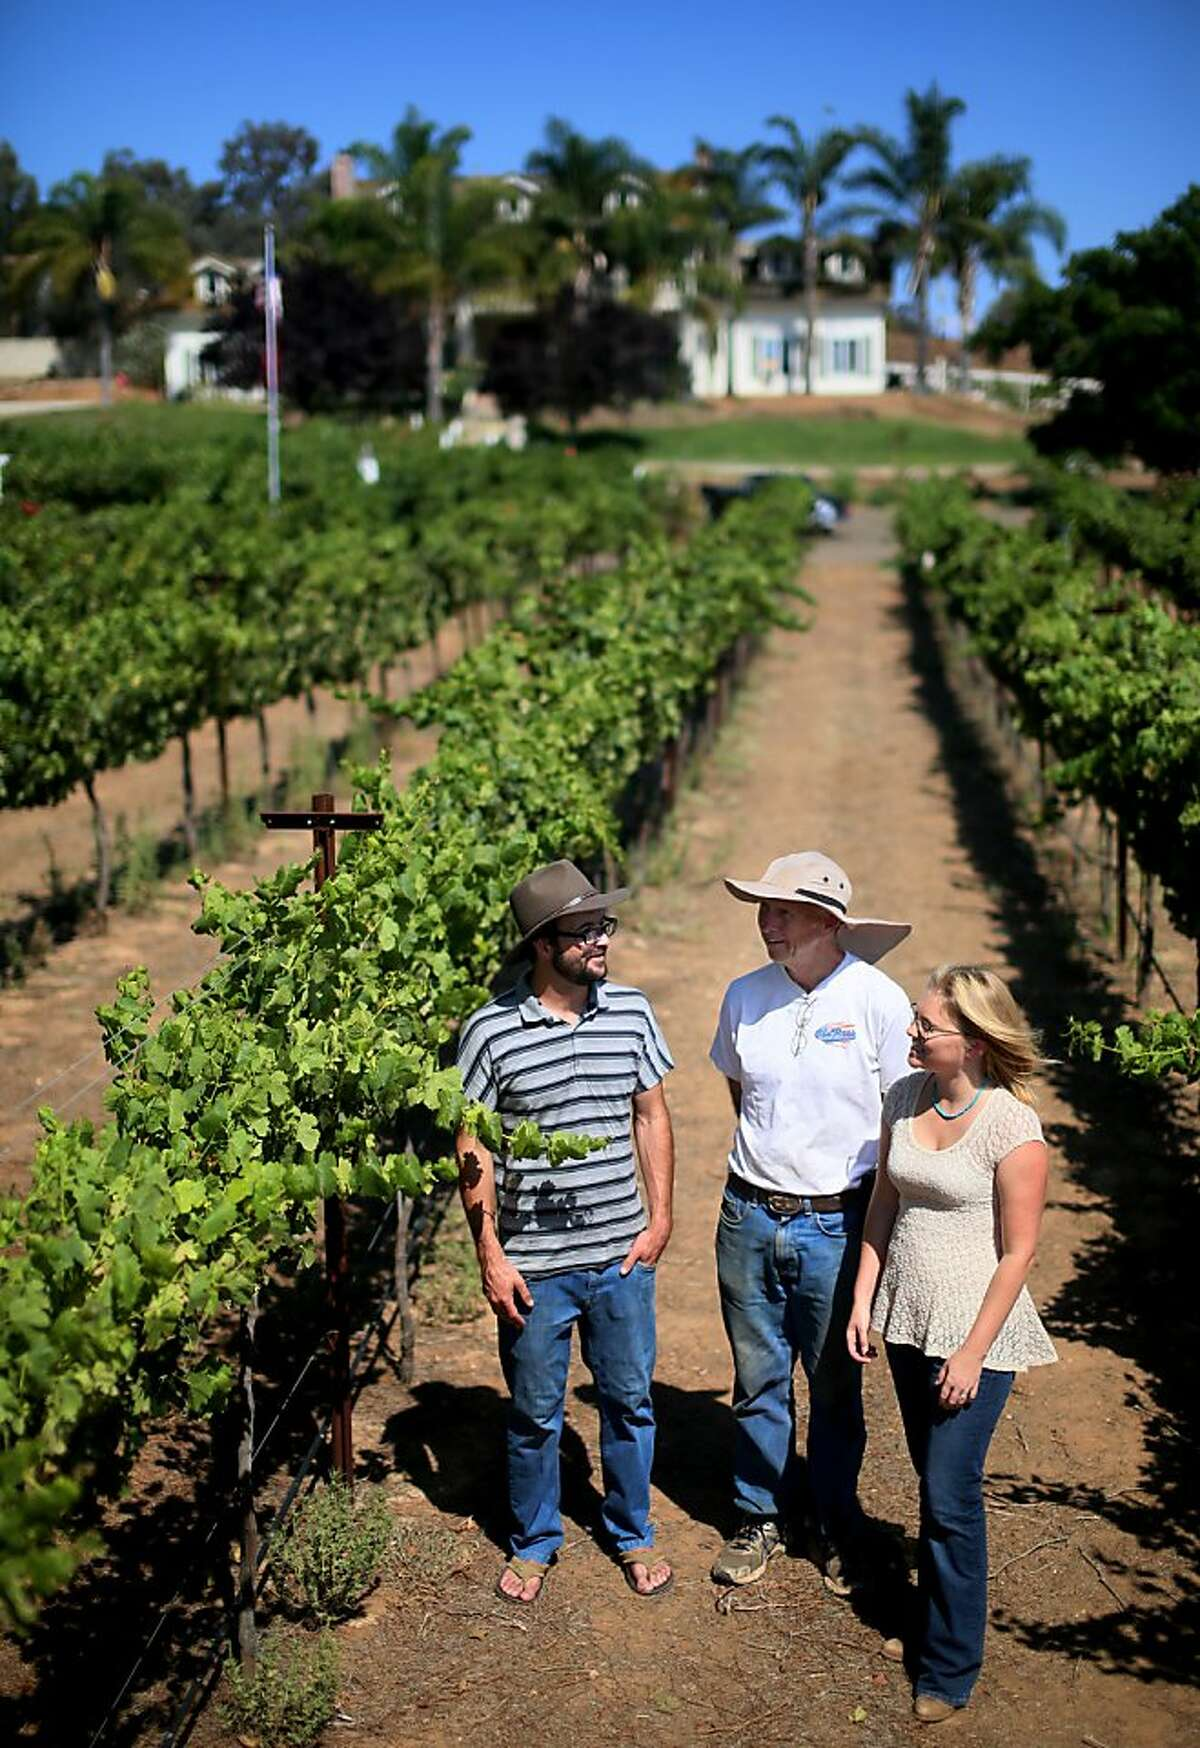 Alysha Stehly,R, Rich McClellan,Middle, and Chris Broomwell look over grapes in a vinyard at Highland Hills Vinyard in Ramona, CA on Friday, August 16, 2013. Chris and Alysha (husband and wife) both come from old SD farming families, and now make wine together, with some combination of their own label and work done for the vineyards that Alysha's father installs.(Photo by Sandy Huffaker for The SF Chronicle)